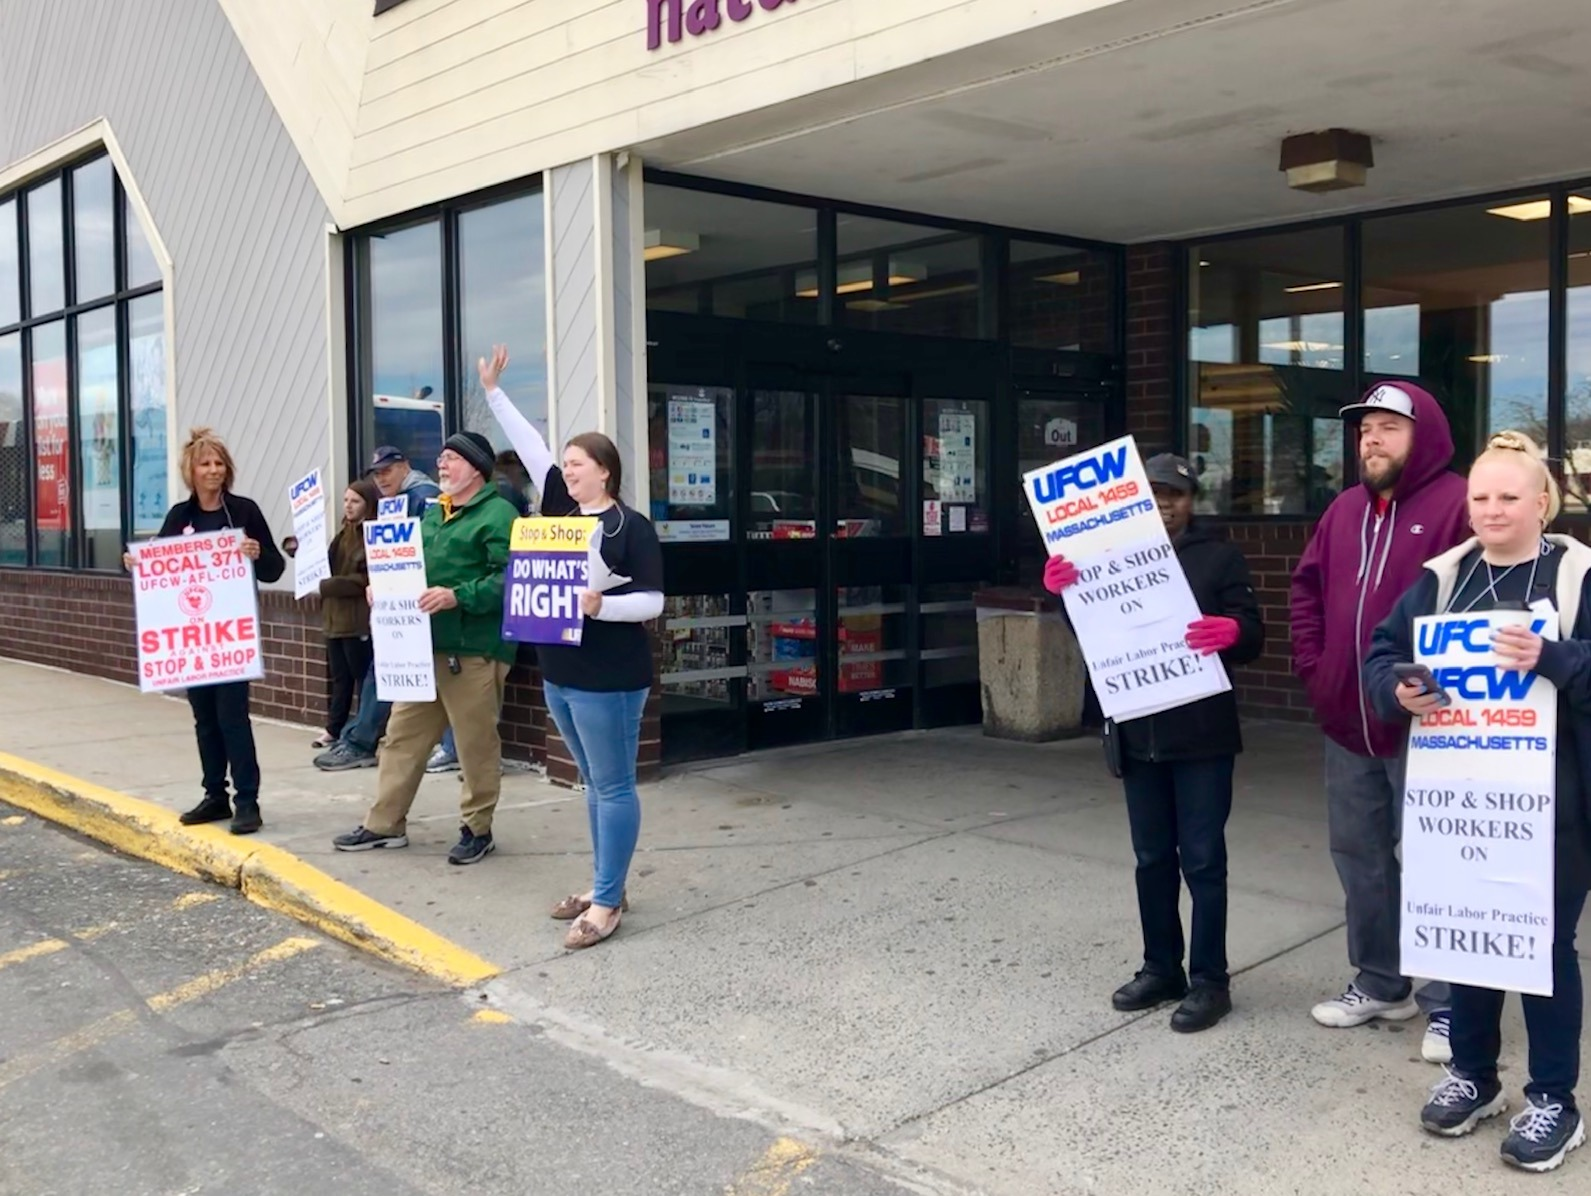 stop next against job action which stores area unit open